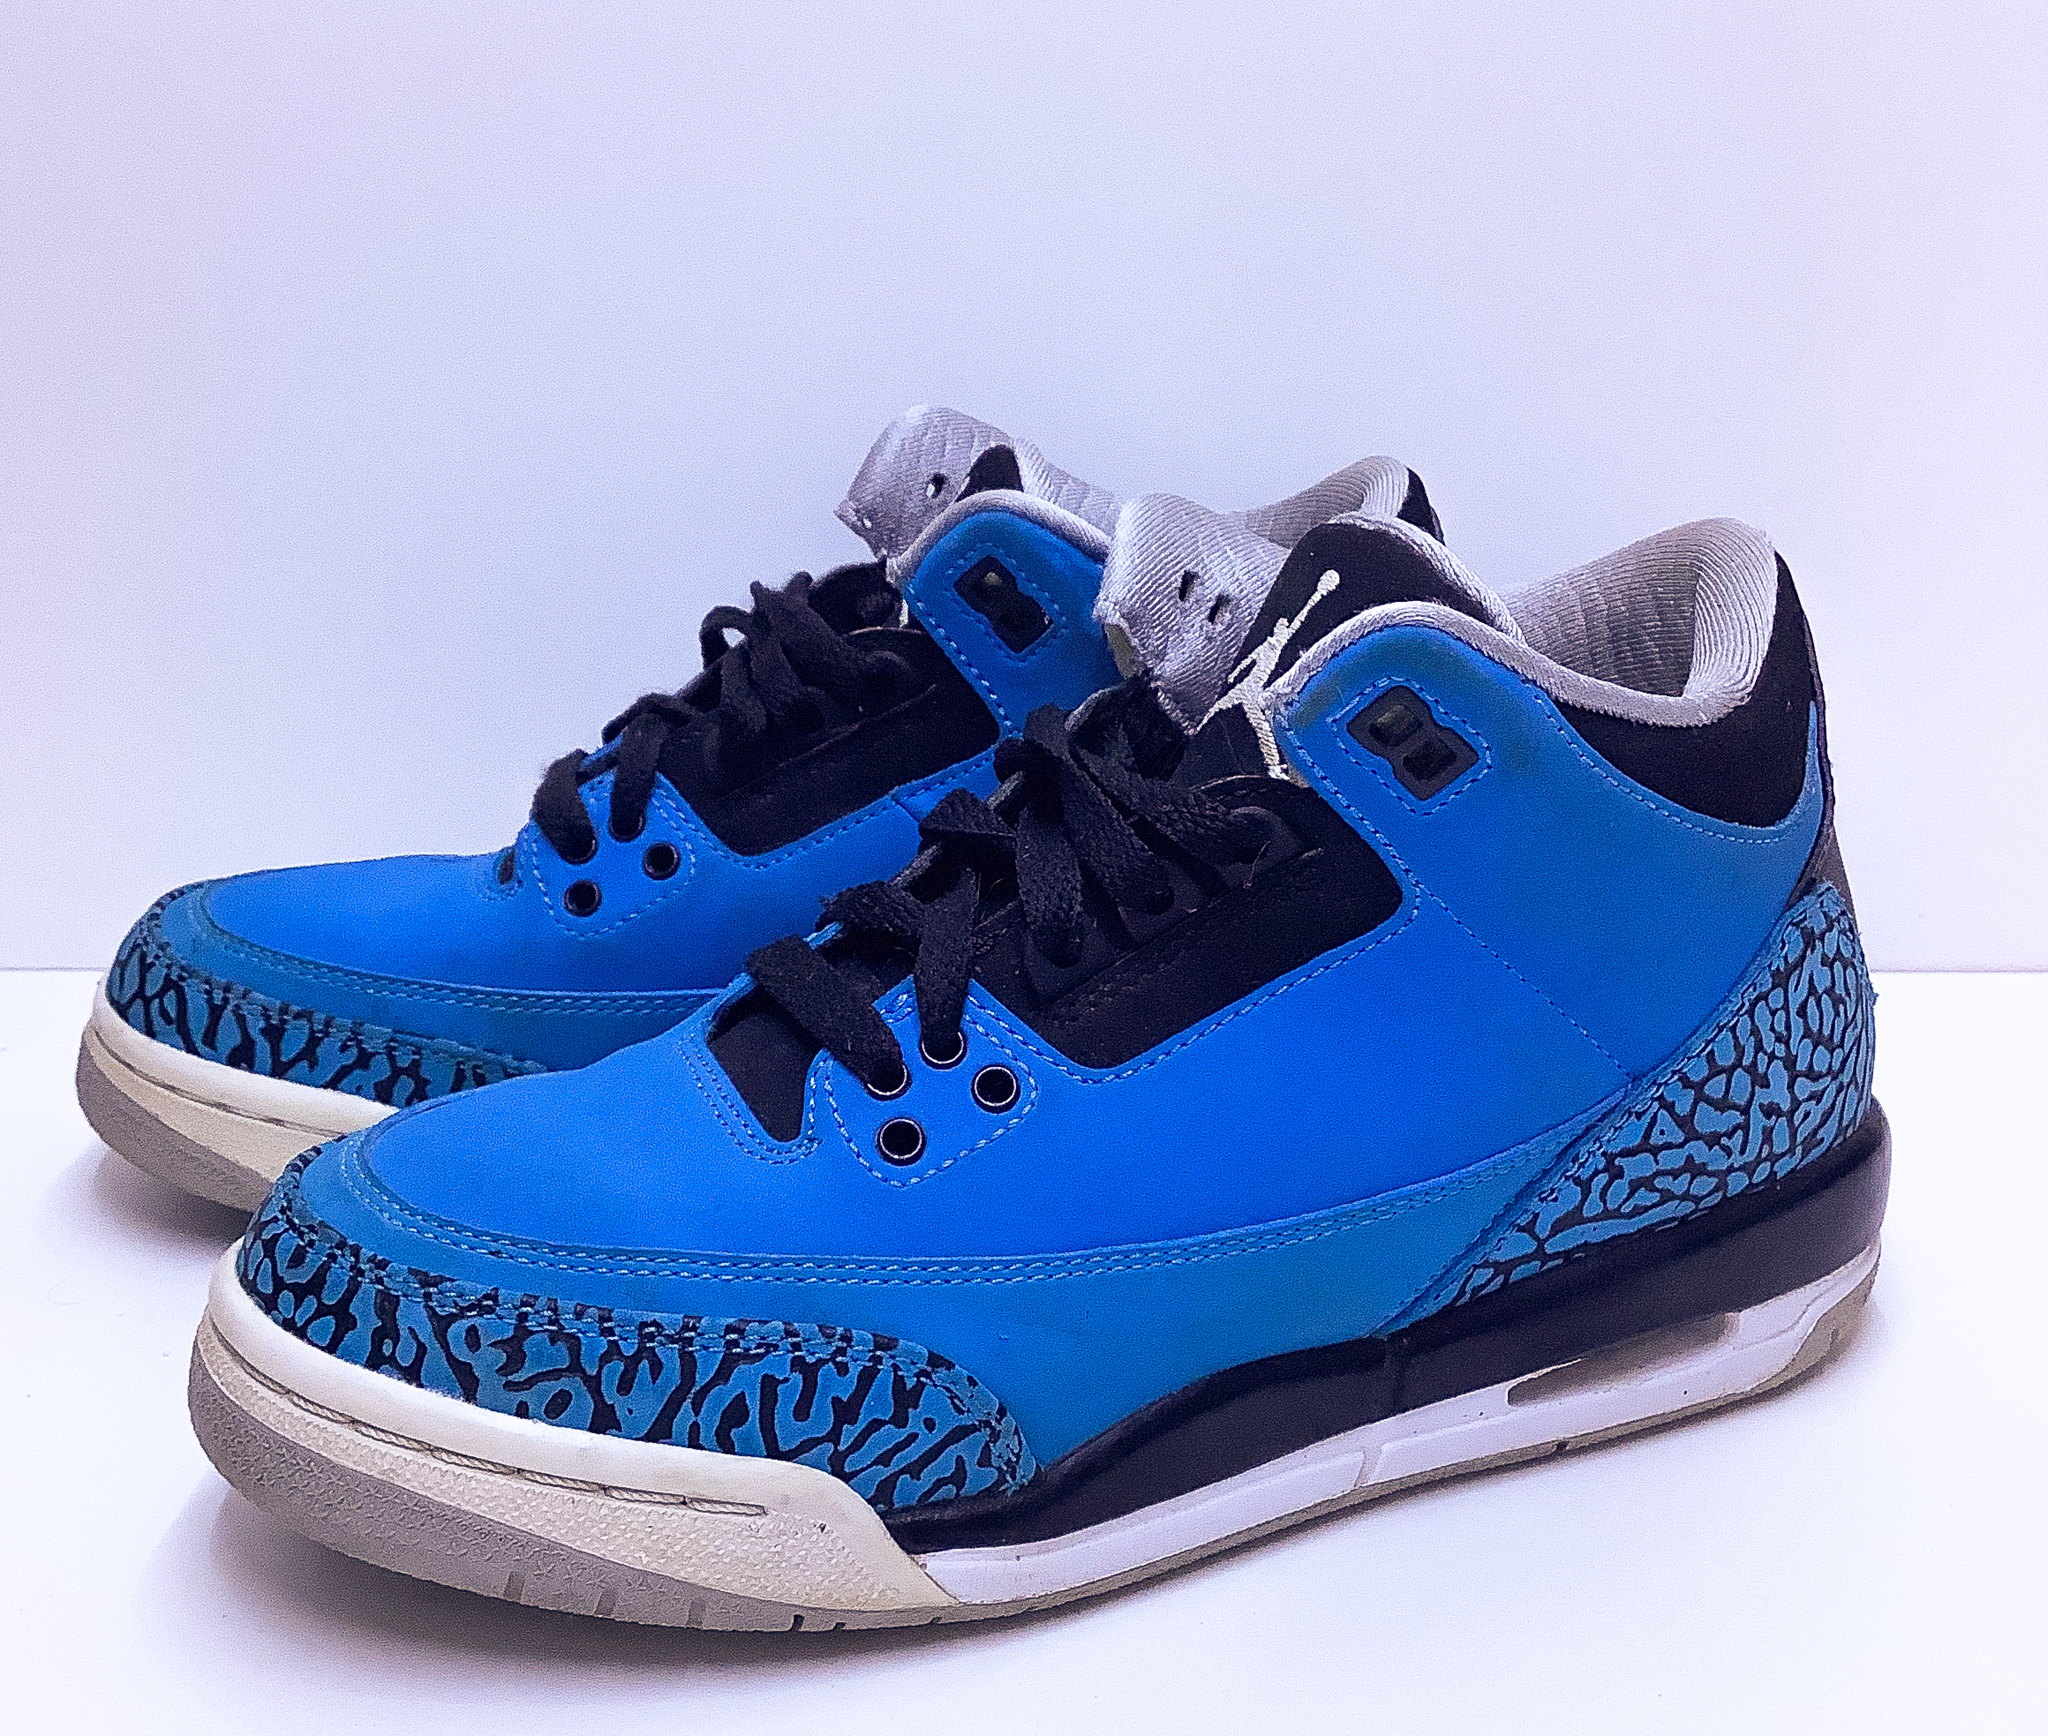 Jordan 3 Retro Powder Blue GS